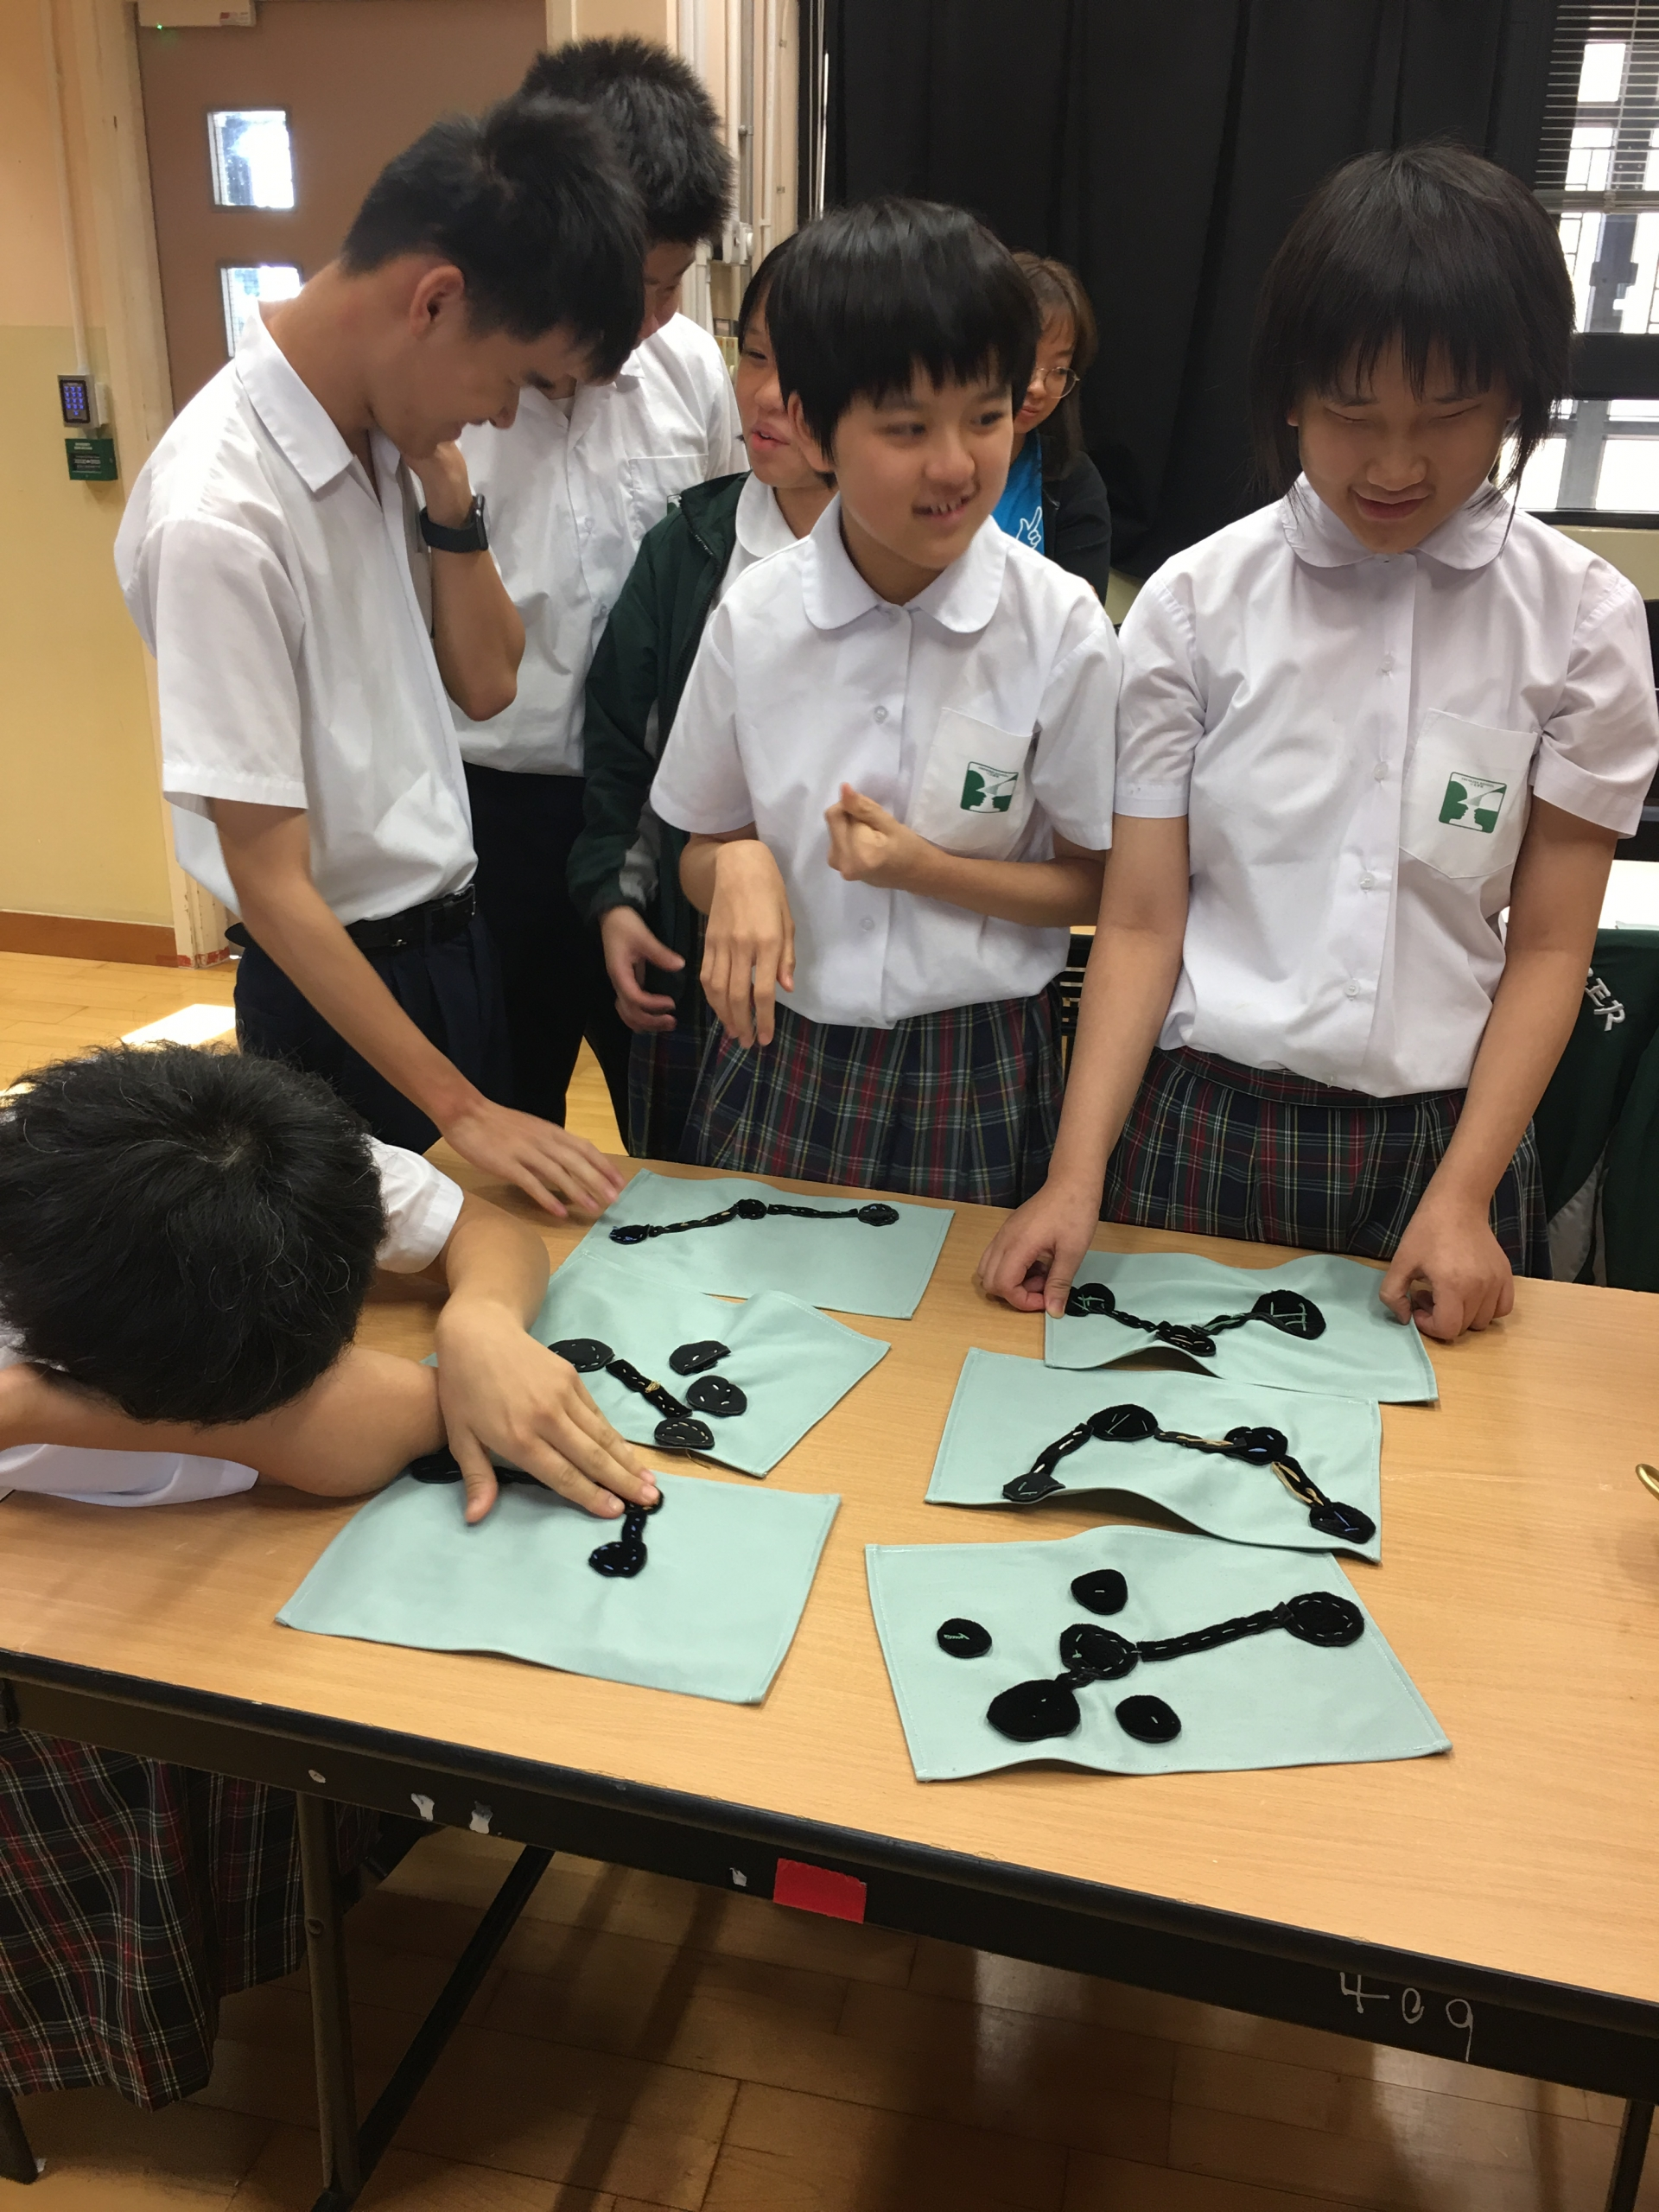 6 students from the Ebenezer School and Home for the Visually Impaired are gathered around a table, touching each other's finished work of hand-sewn black felt and cloth network representations. They are all wearing uniforms from the school. Most of the students look happy and one of the students is crouched on the table.